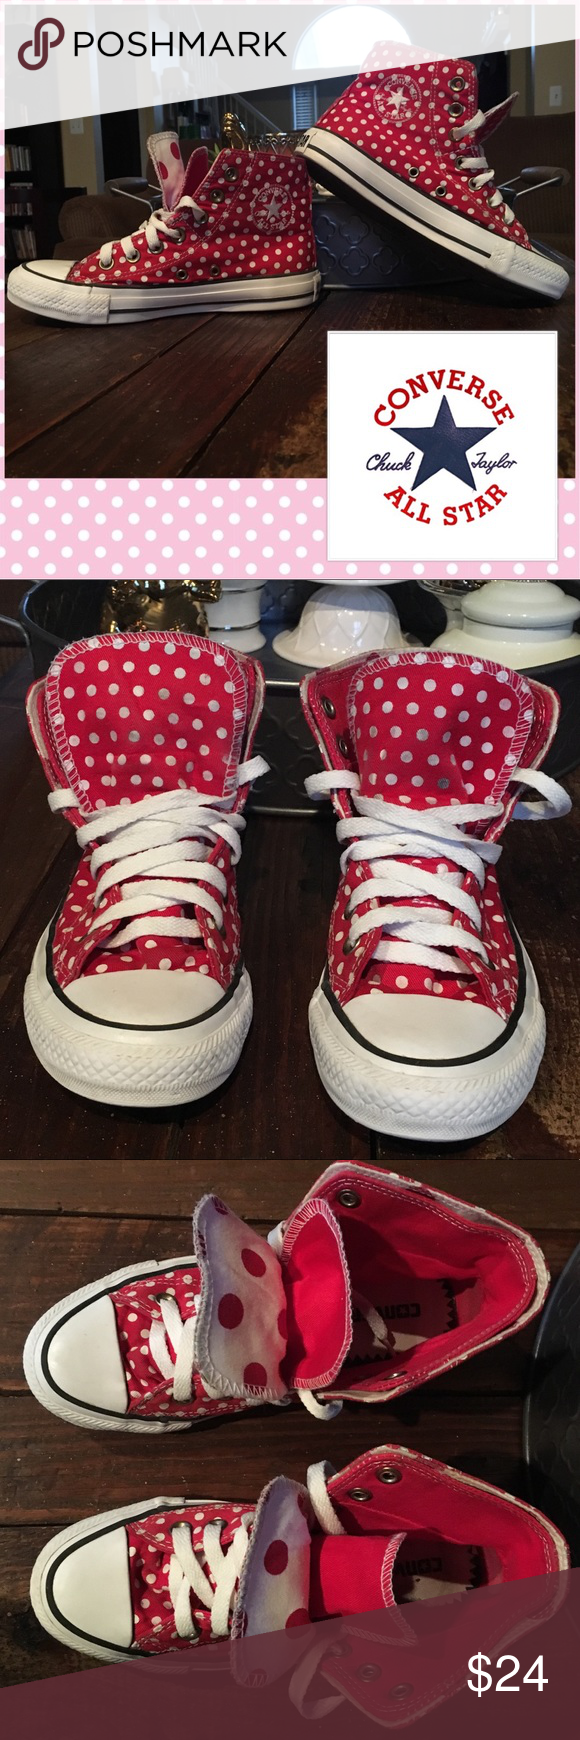 Double Tongue Polka Dot Converse All Stars Hi Tops Adorable